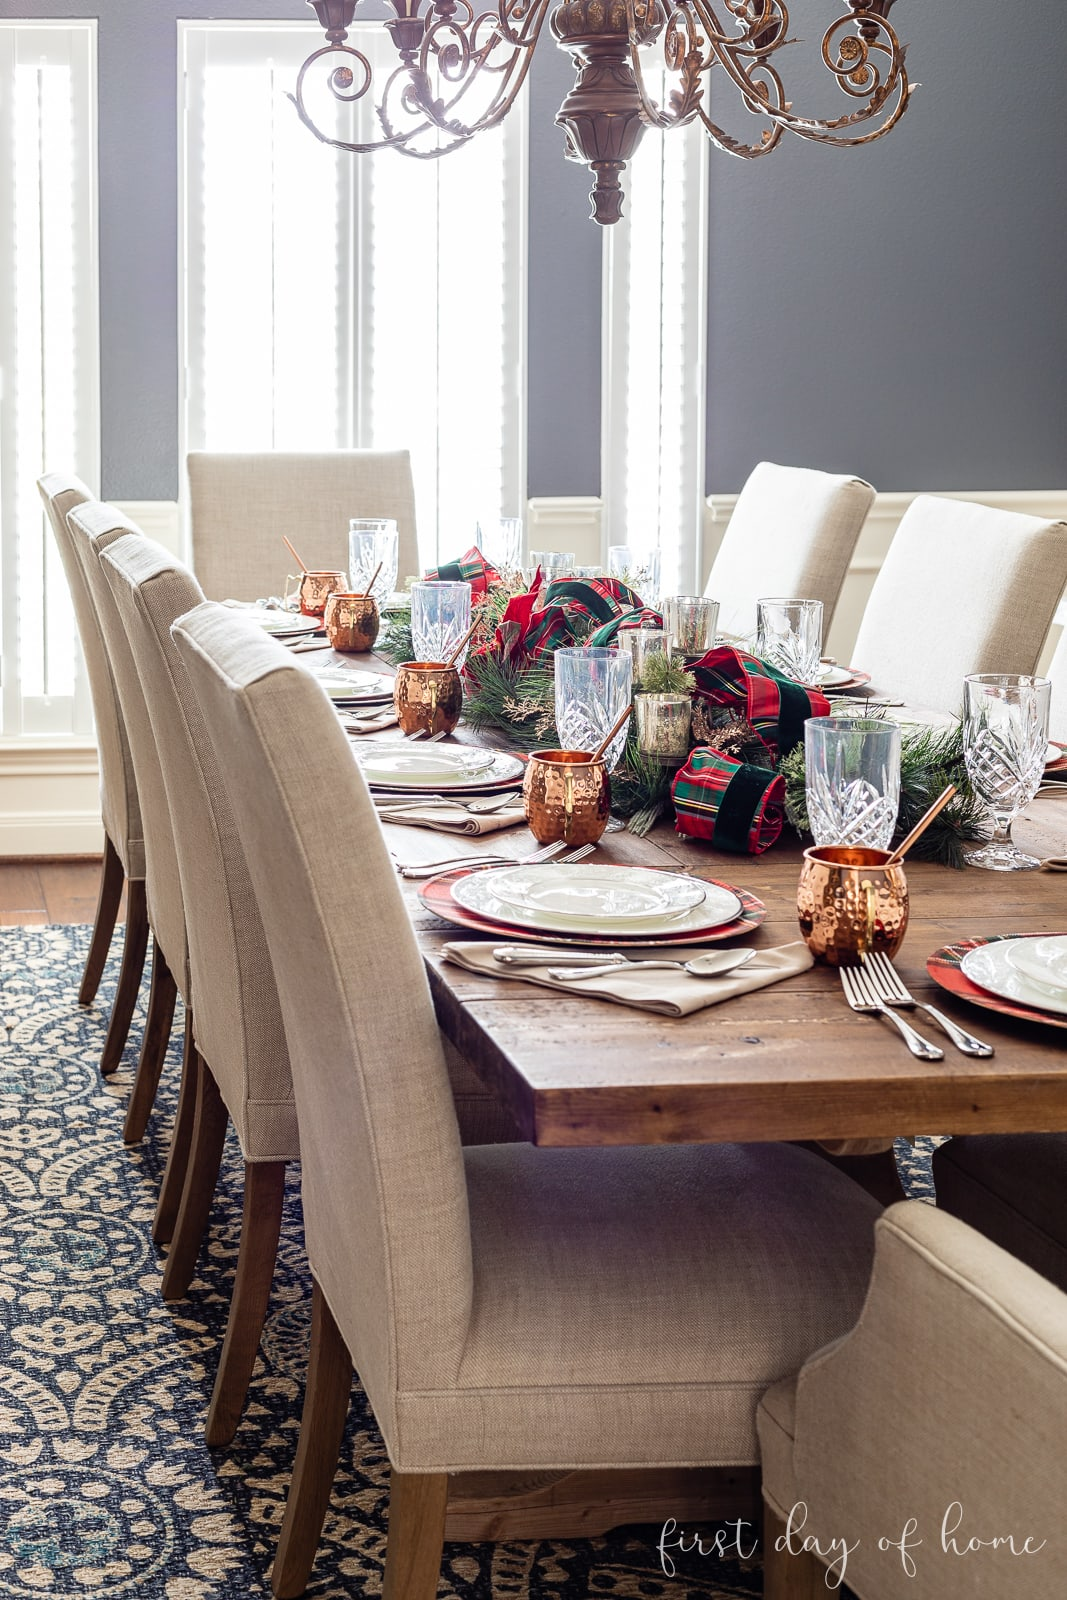 Formal dining room Christmas home decor with plaid tartan theme and copper accents